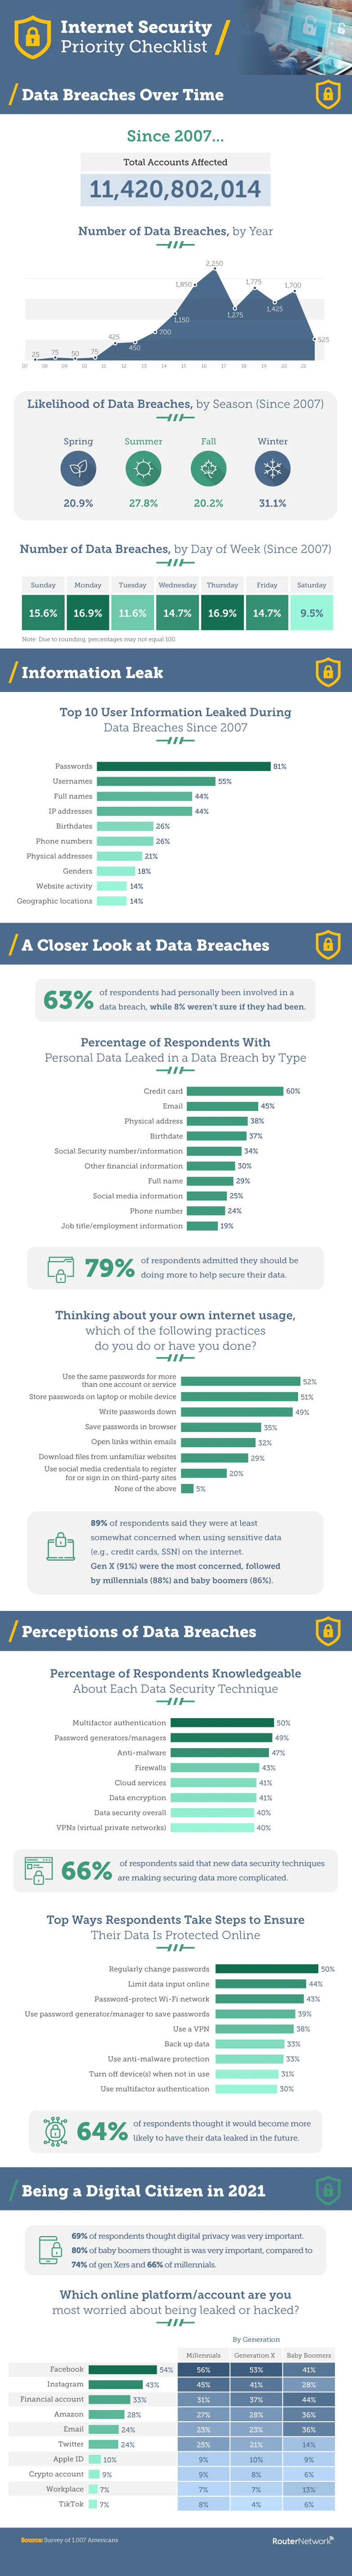 Infographic outlines the findings of a recent survey into web security